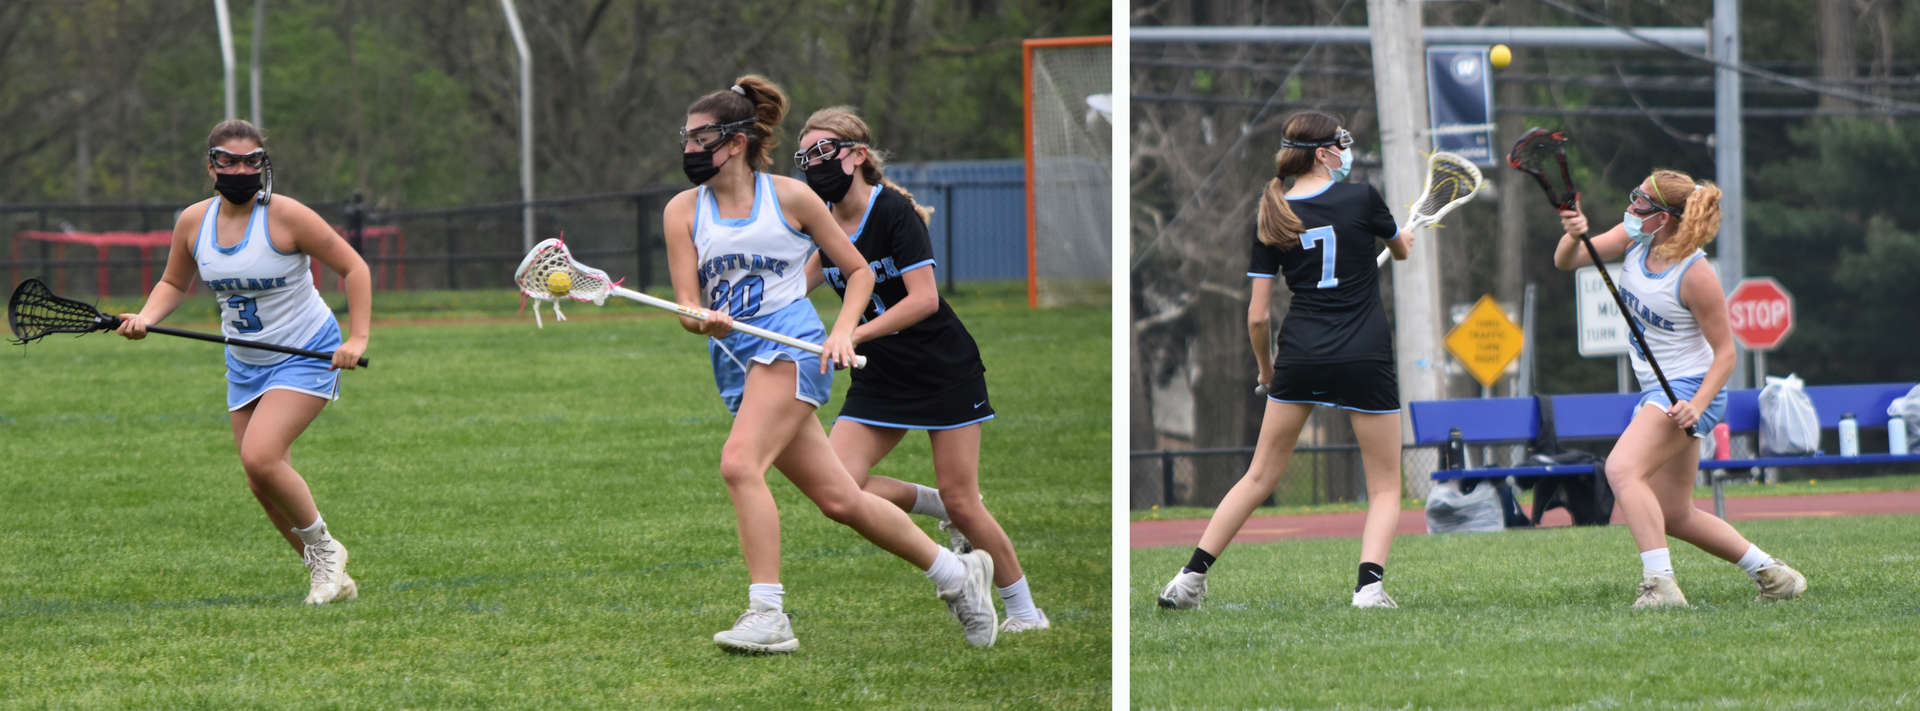 montage of girls playing lacrosse